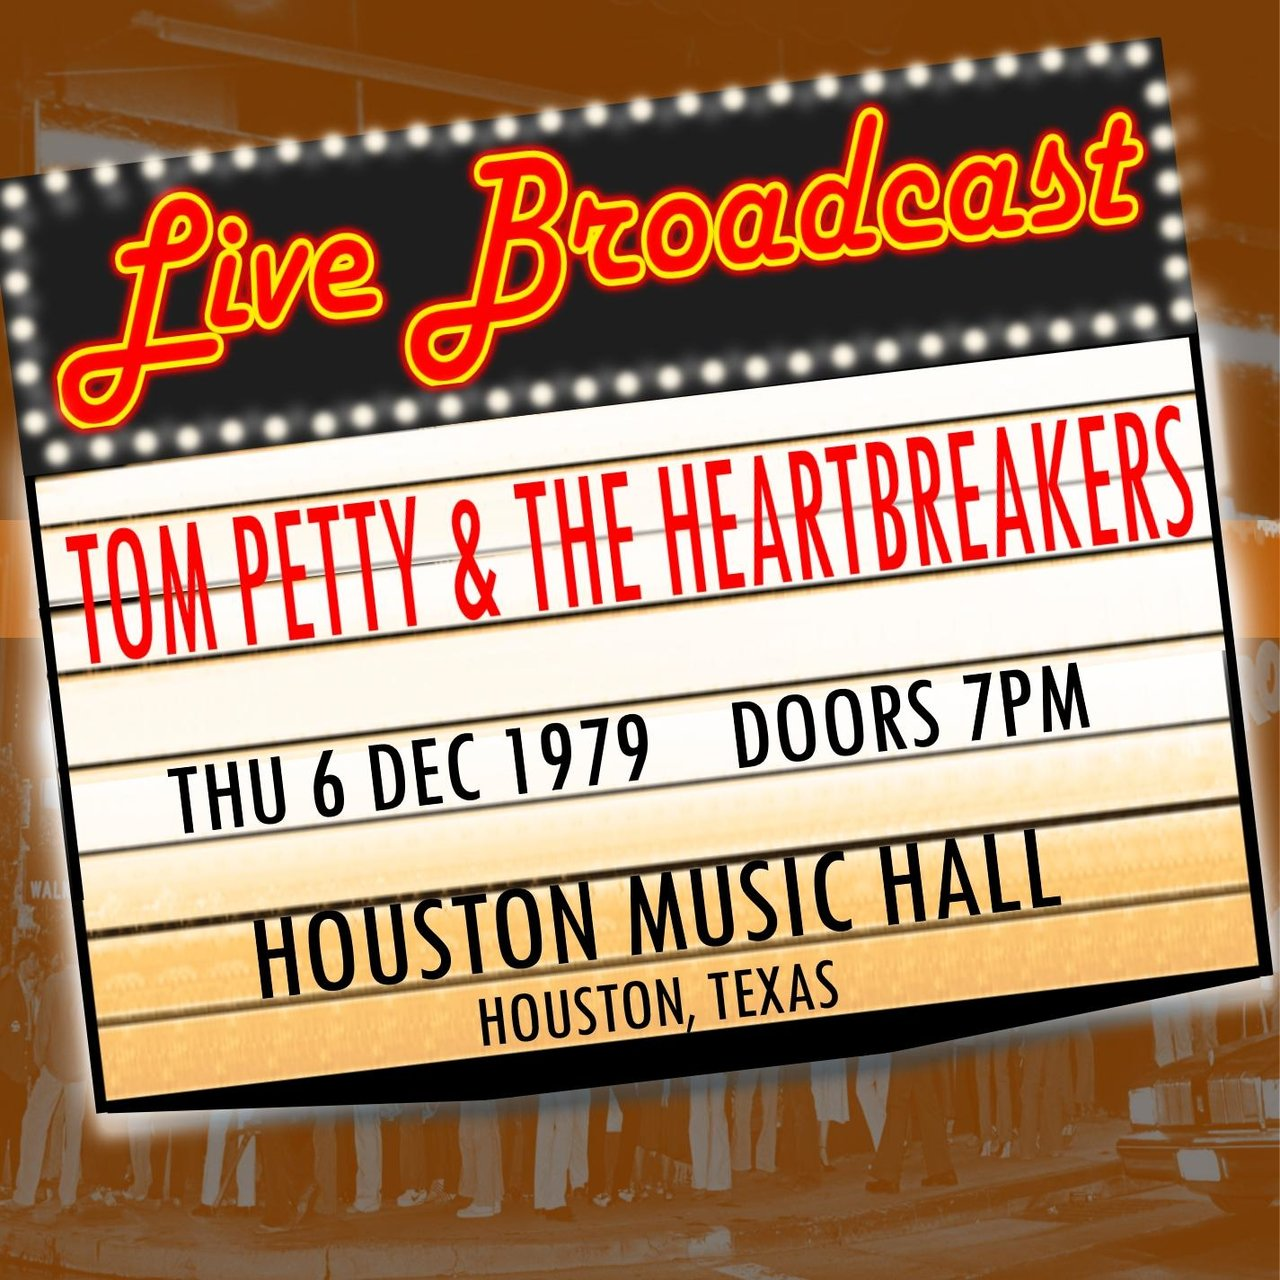 Live Broadcast - 6th December 1979  Houston Music Hall,  Houston, Texas